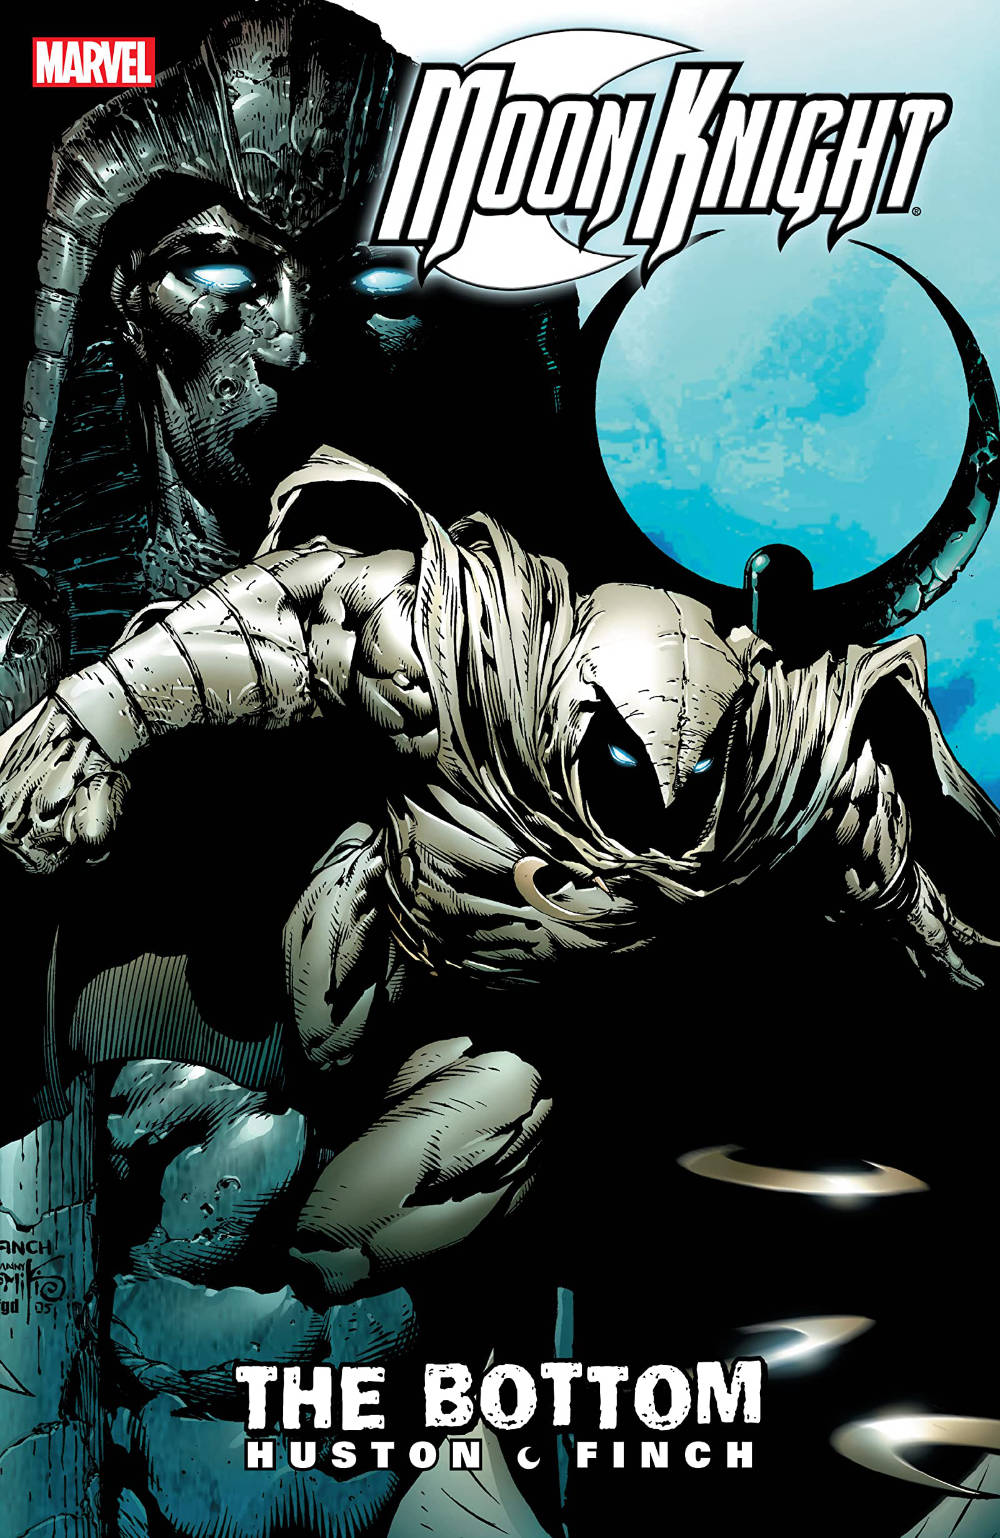 Moon Knight: The Bottom cover